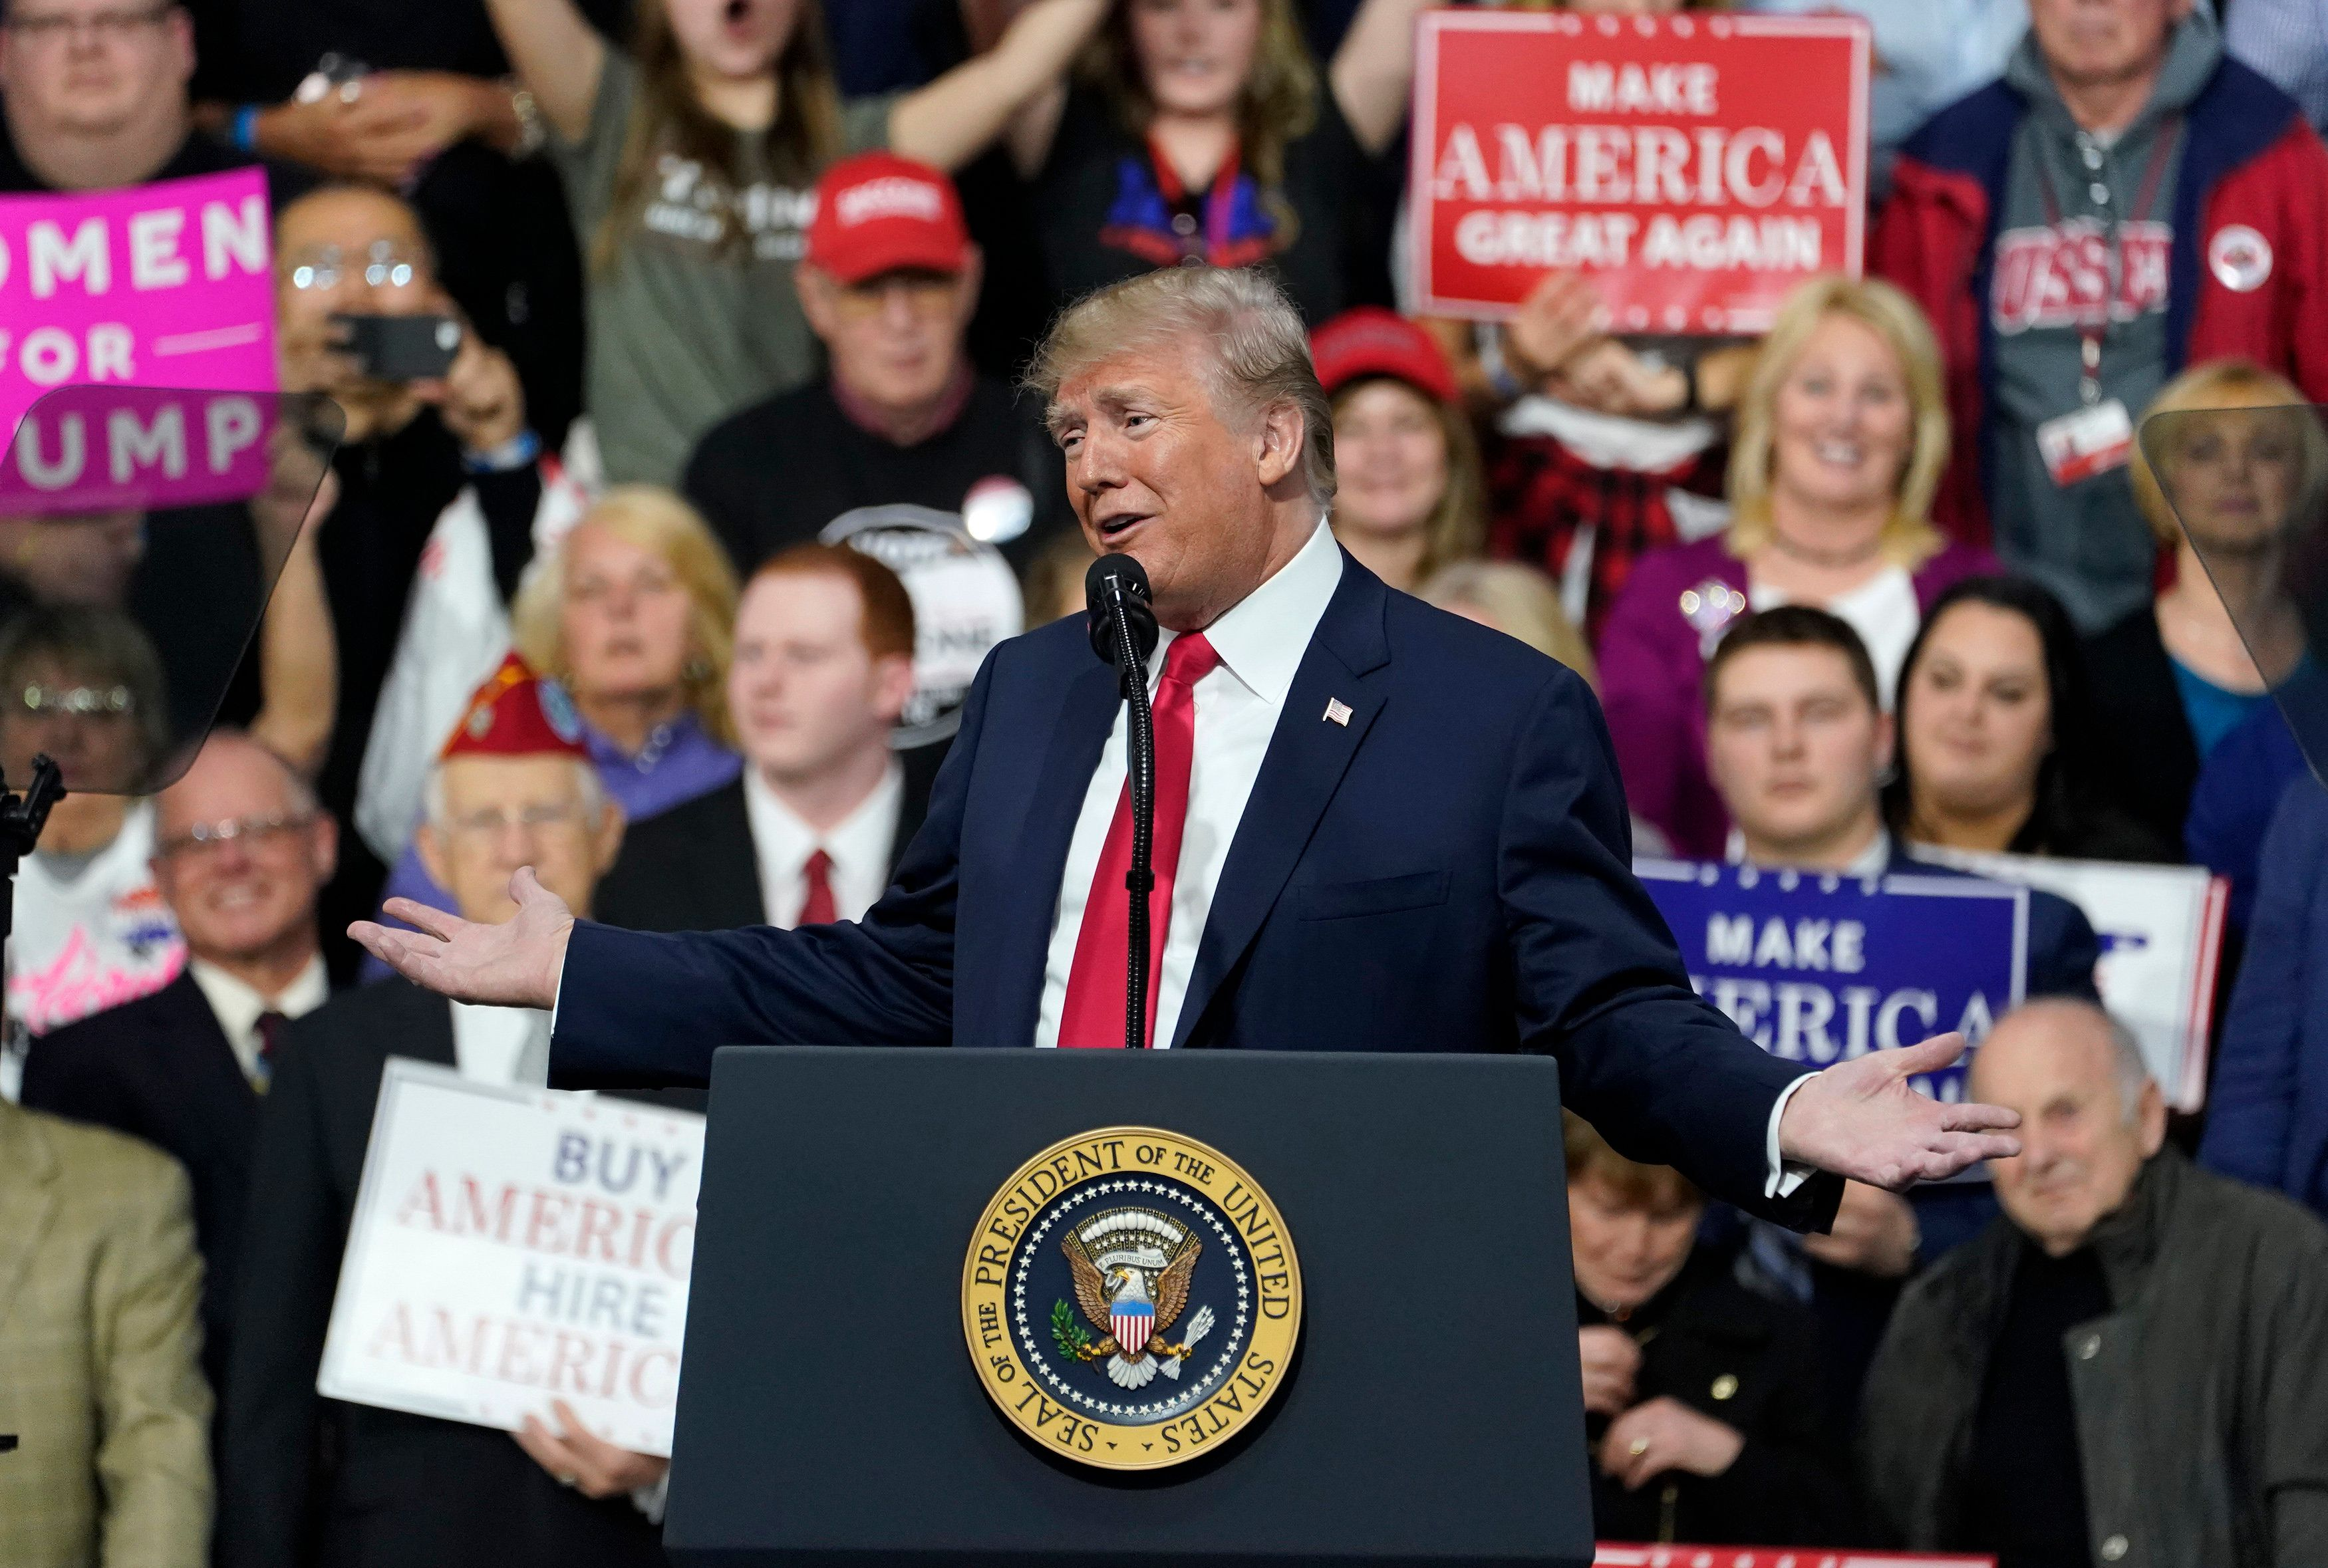 U.S. President Donald Trump speaks  in support of Republican congressional candidate Rick Sacconne during a Make America Great Again rally in Moon Township, Pennsylvania, U.S., March 10, 2018. REUTERS/Joshua Roberts